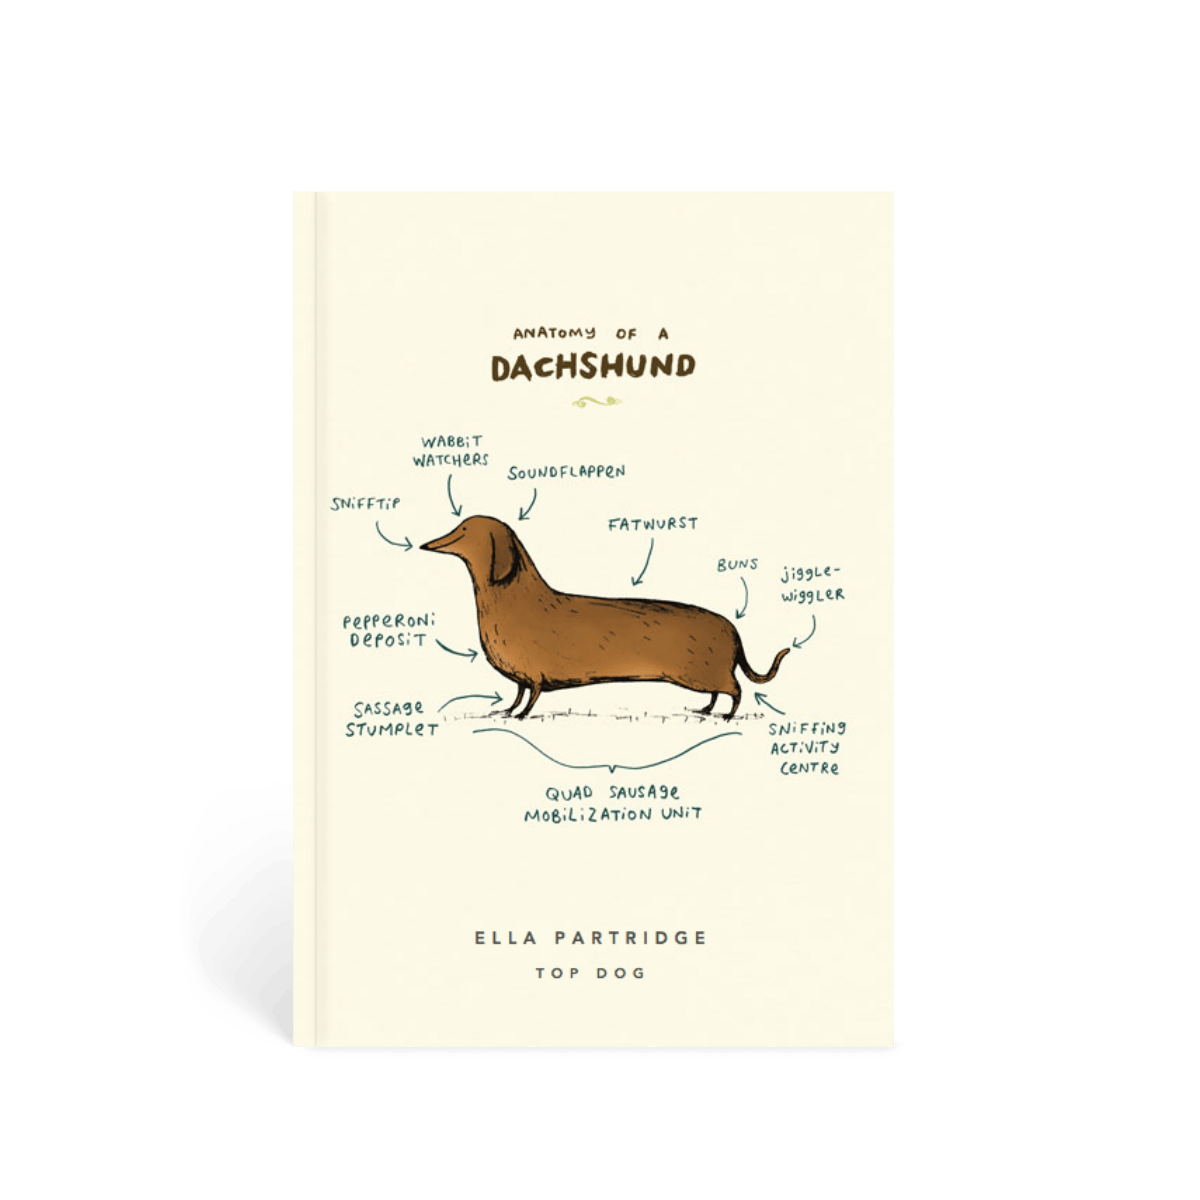 Https%3a%2f%2fwww.papier.com%2fproduct image%2f42046%2f25%2fanatomy of a dachshund 10724 front 1532362587.png?ixlib=rb 1.1